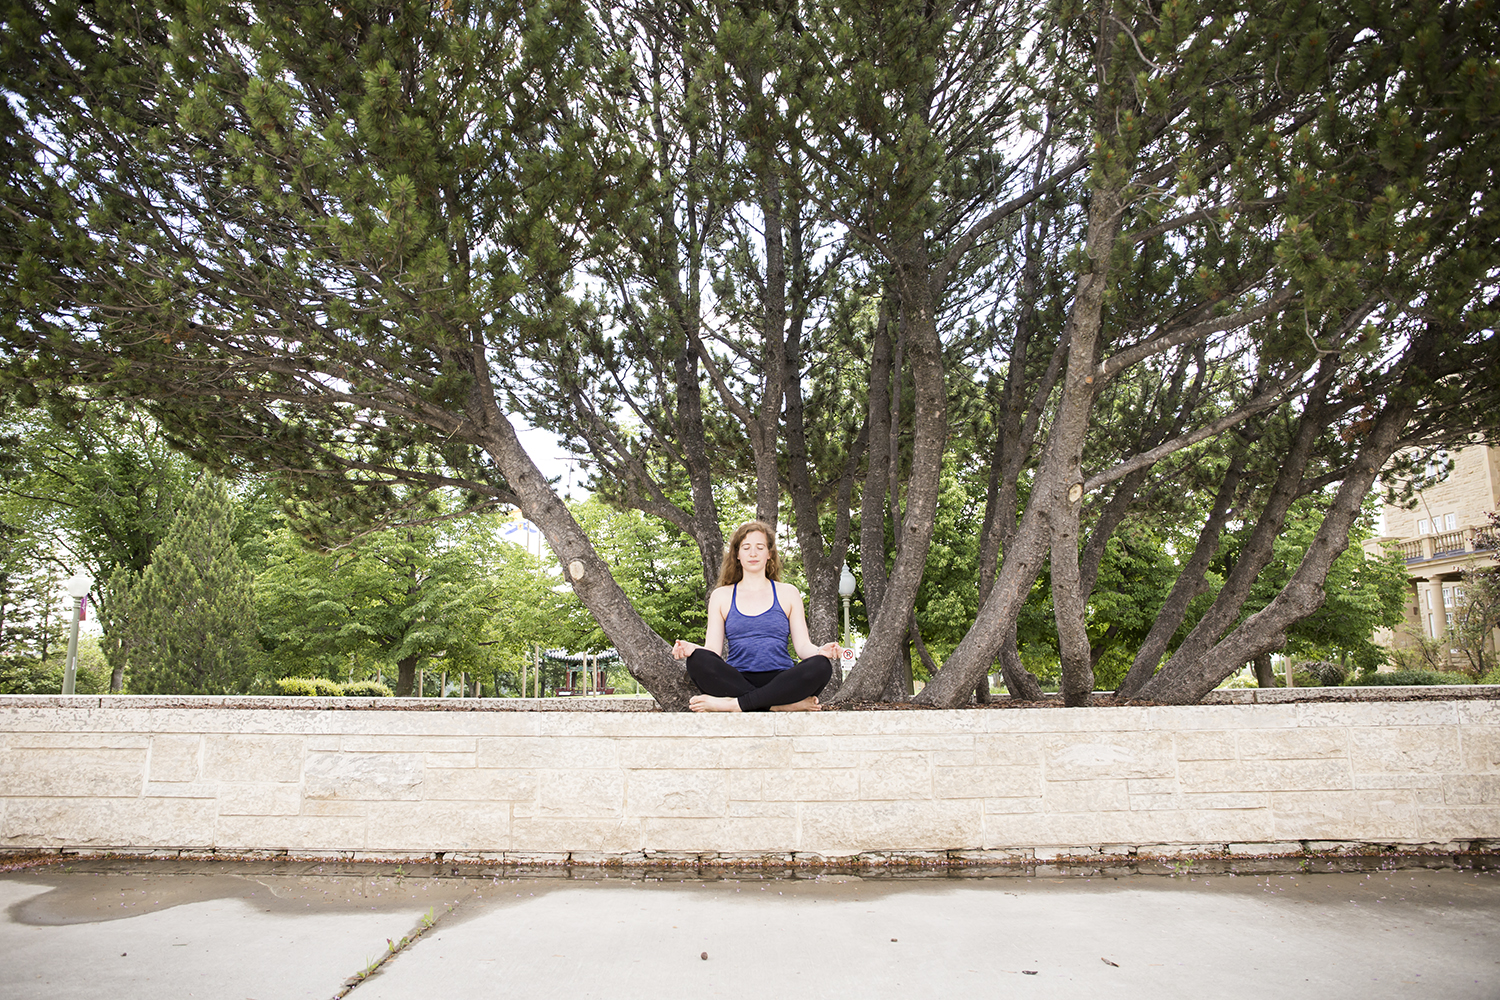 Photos in this blog courtesy of Caitlin Varrin of Yogalife Studios, featuring Dayna Der